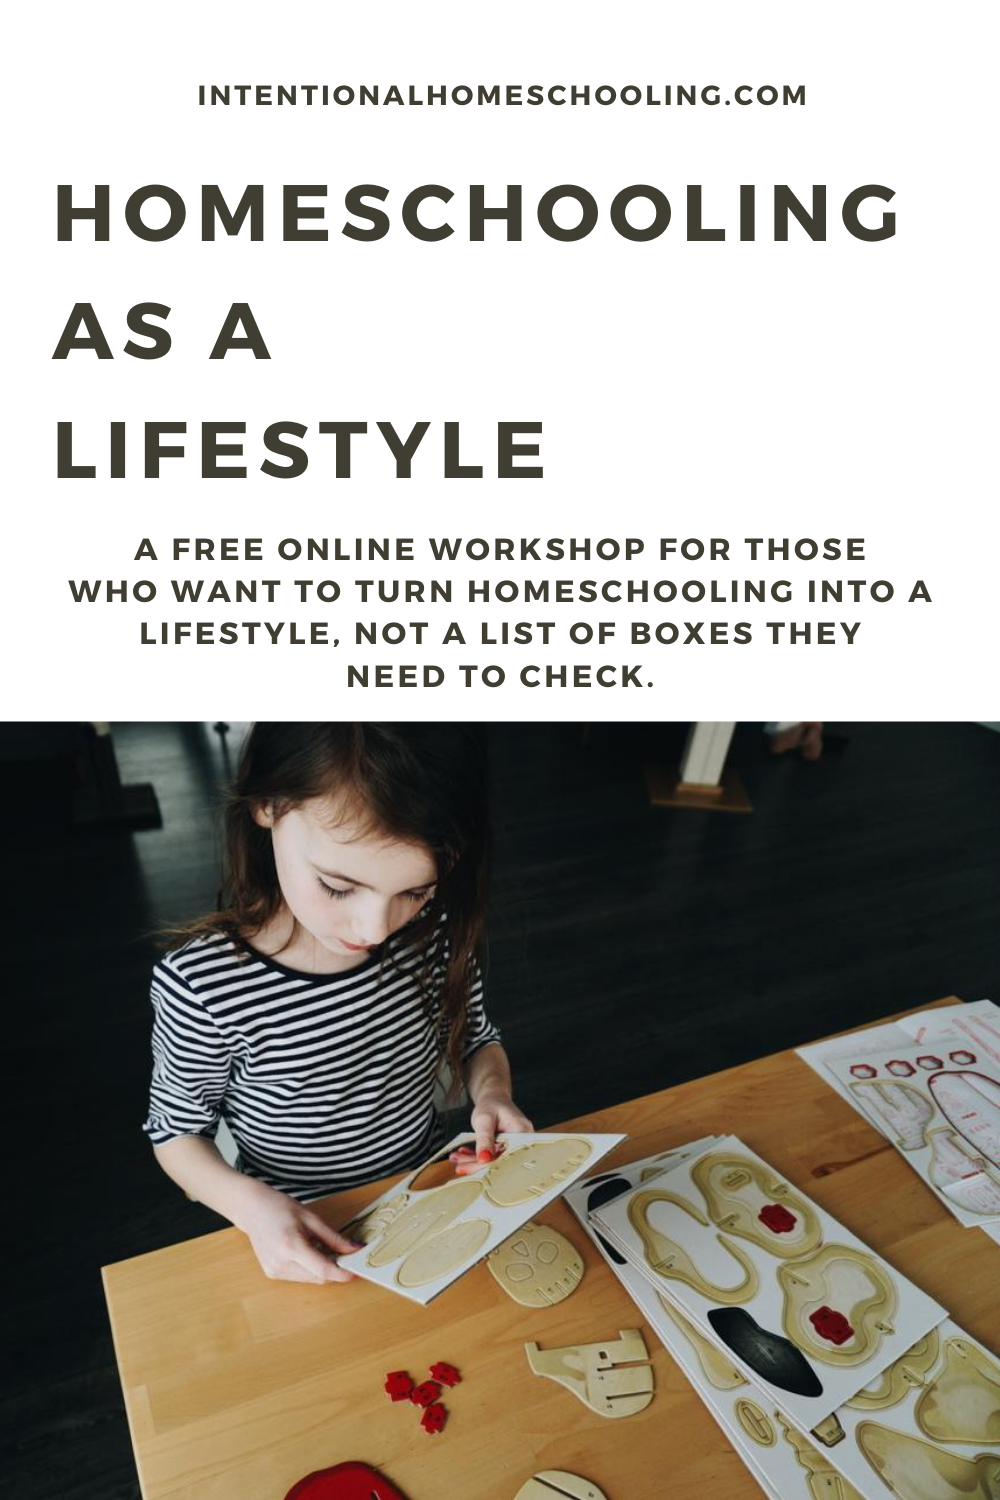 Homeschooling as a Lifestyle - a free workshop that helps you find learning opportunities in your everyday